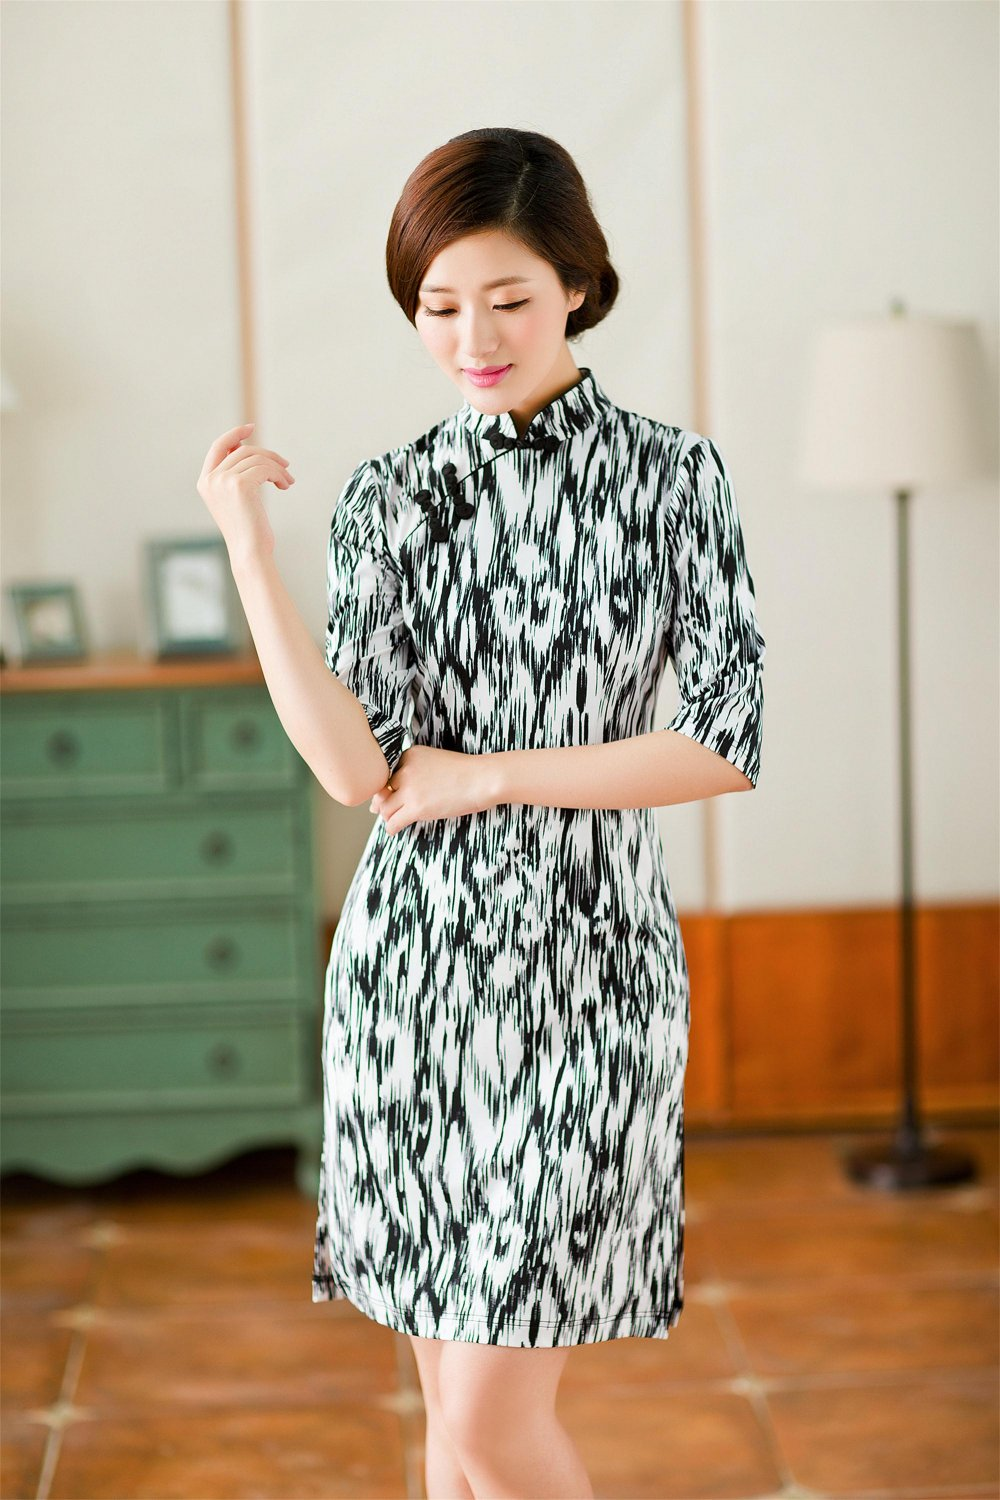 2 FOR 1 CLOTHES 3/4 Sleeve Printed Jersey Dress Qipao XS,S,M,L